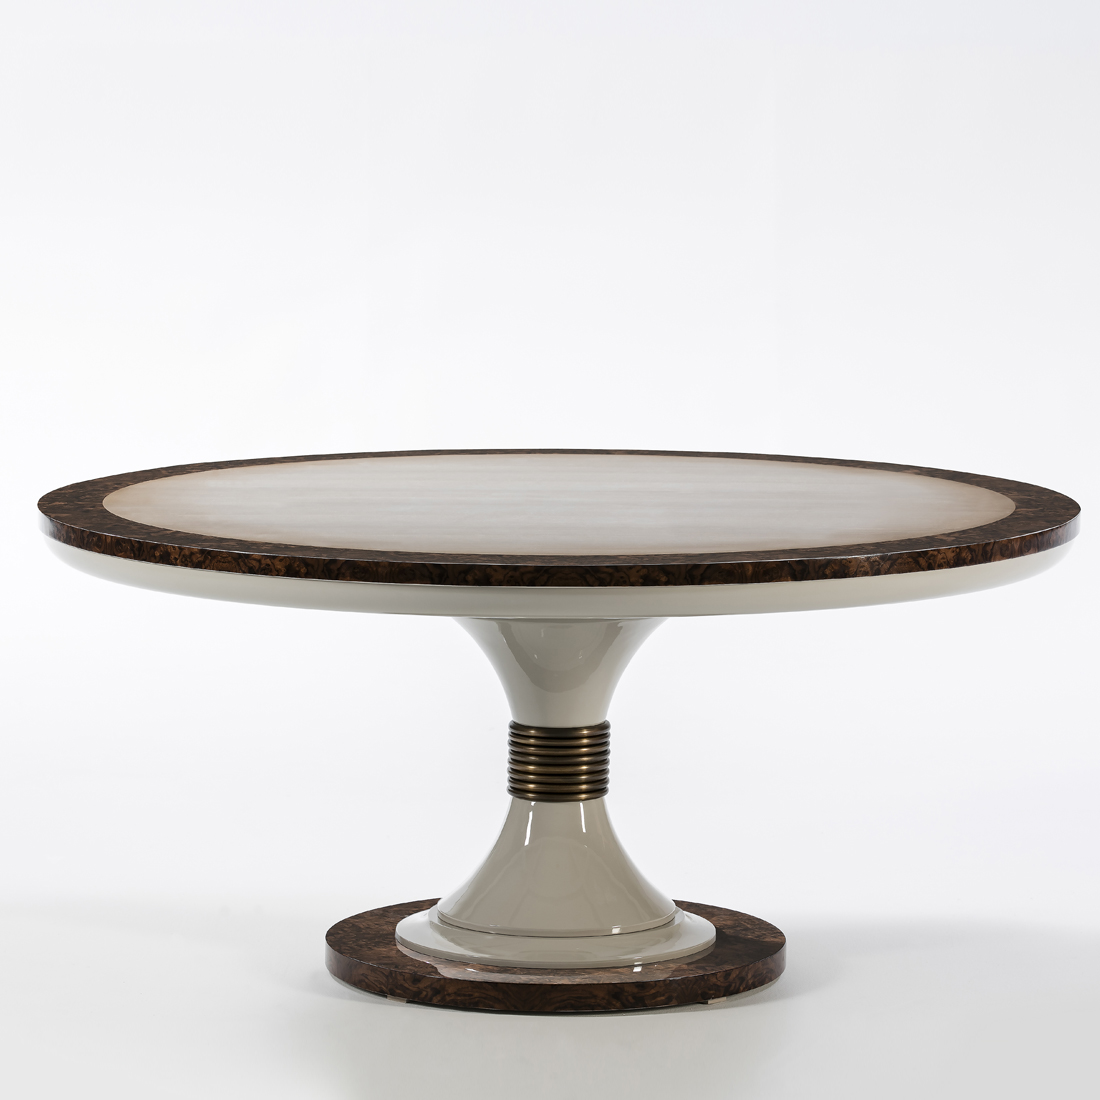 luxury round dining table, high end round dining table, contemporary round dining table